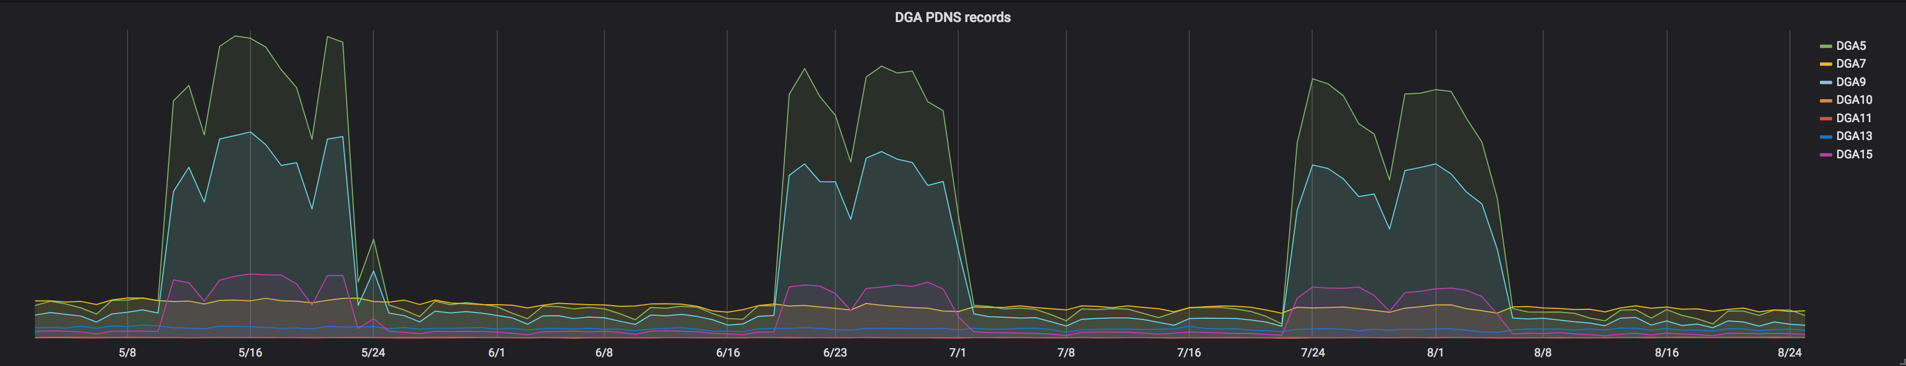 Picture1_DGA PDNS Records.png